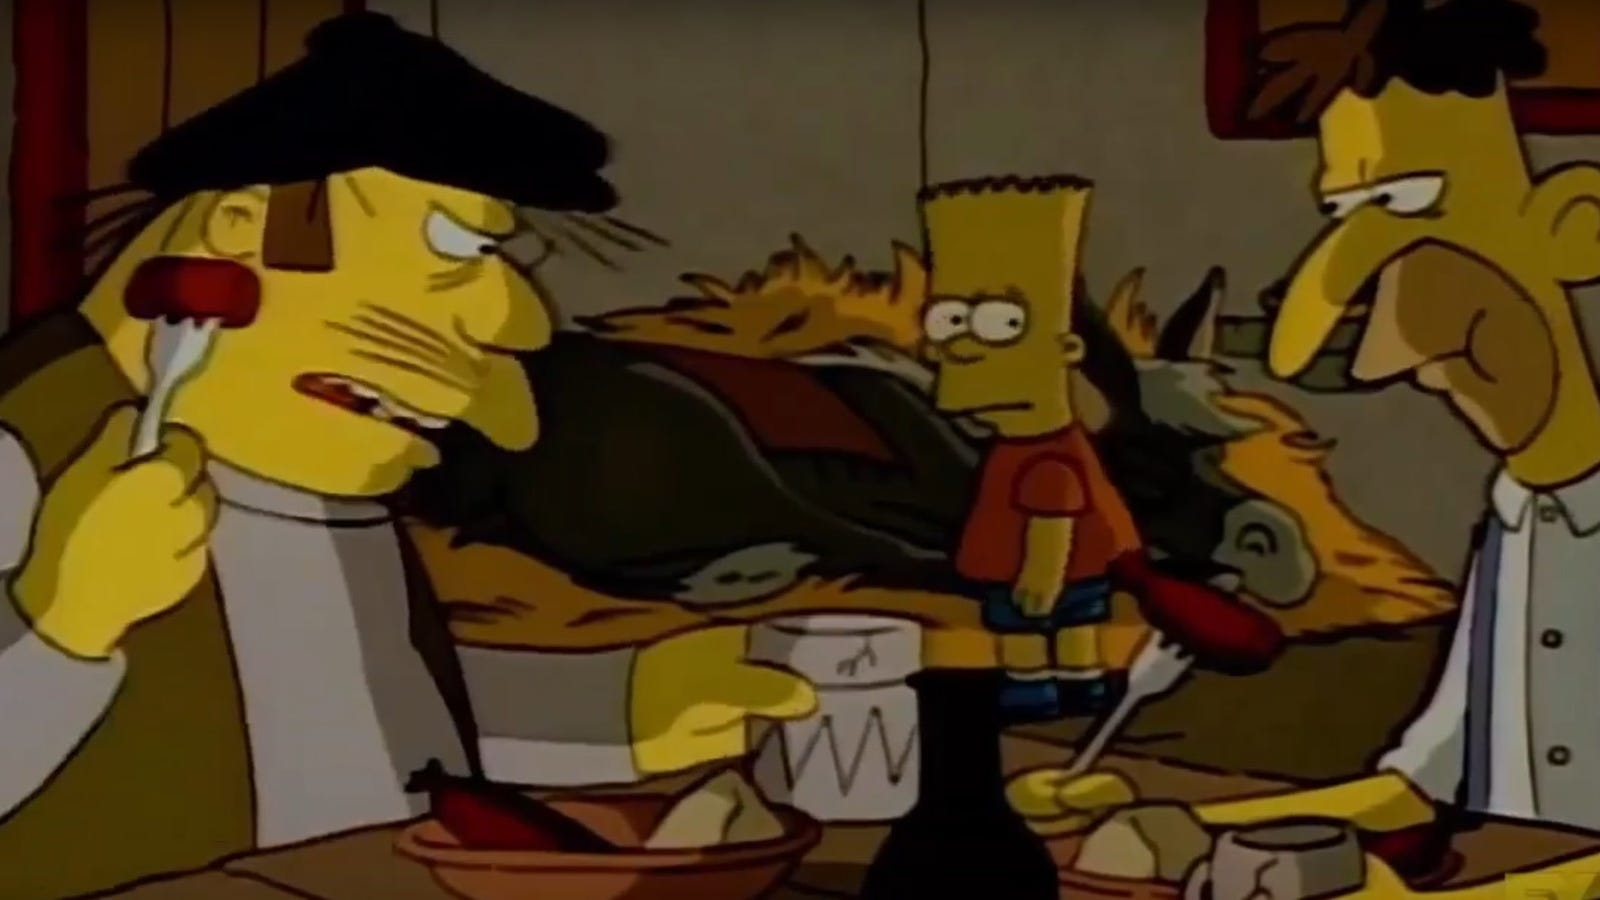 Take a tour of Franco-Canadian relations with this look at region-specific Simpsons dubs